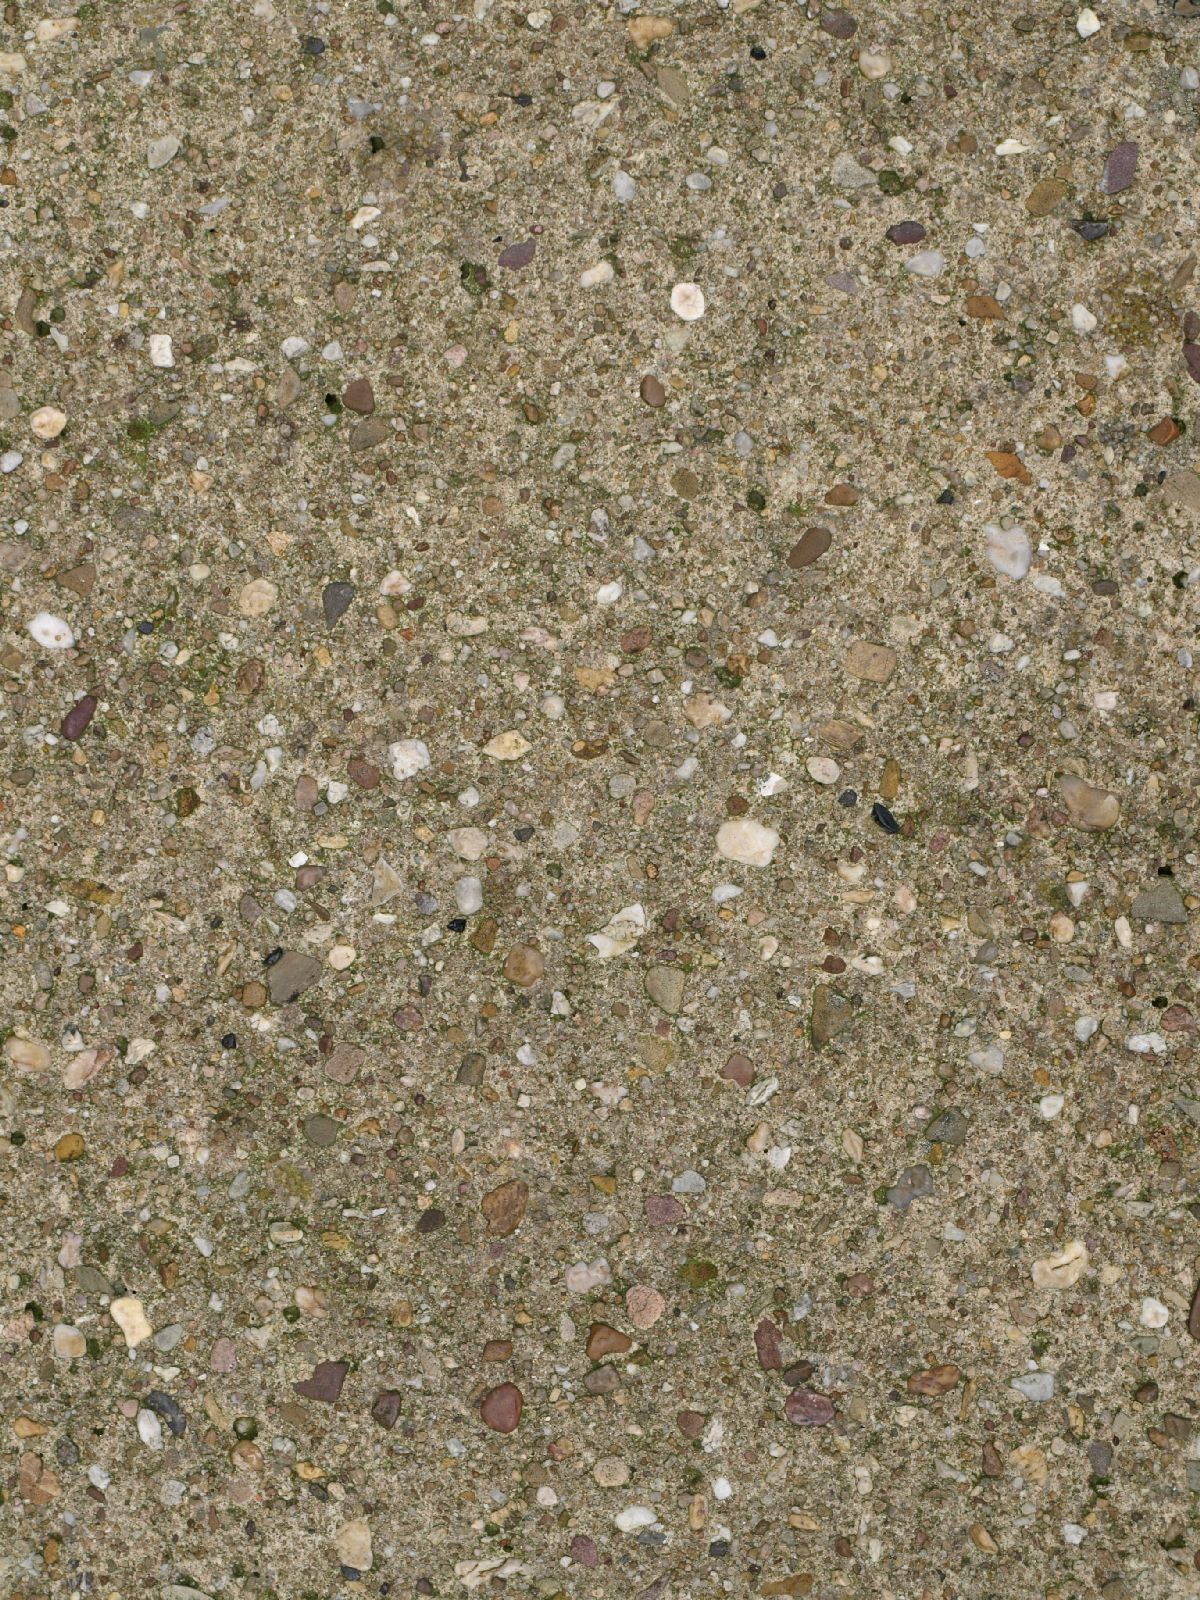 Ground-Nature_Texture_A_P4131114